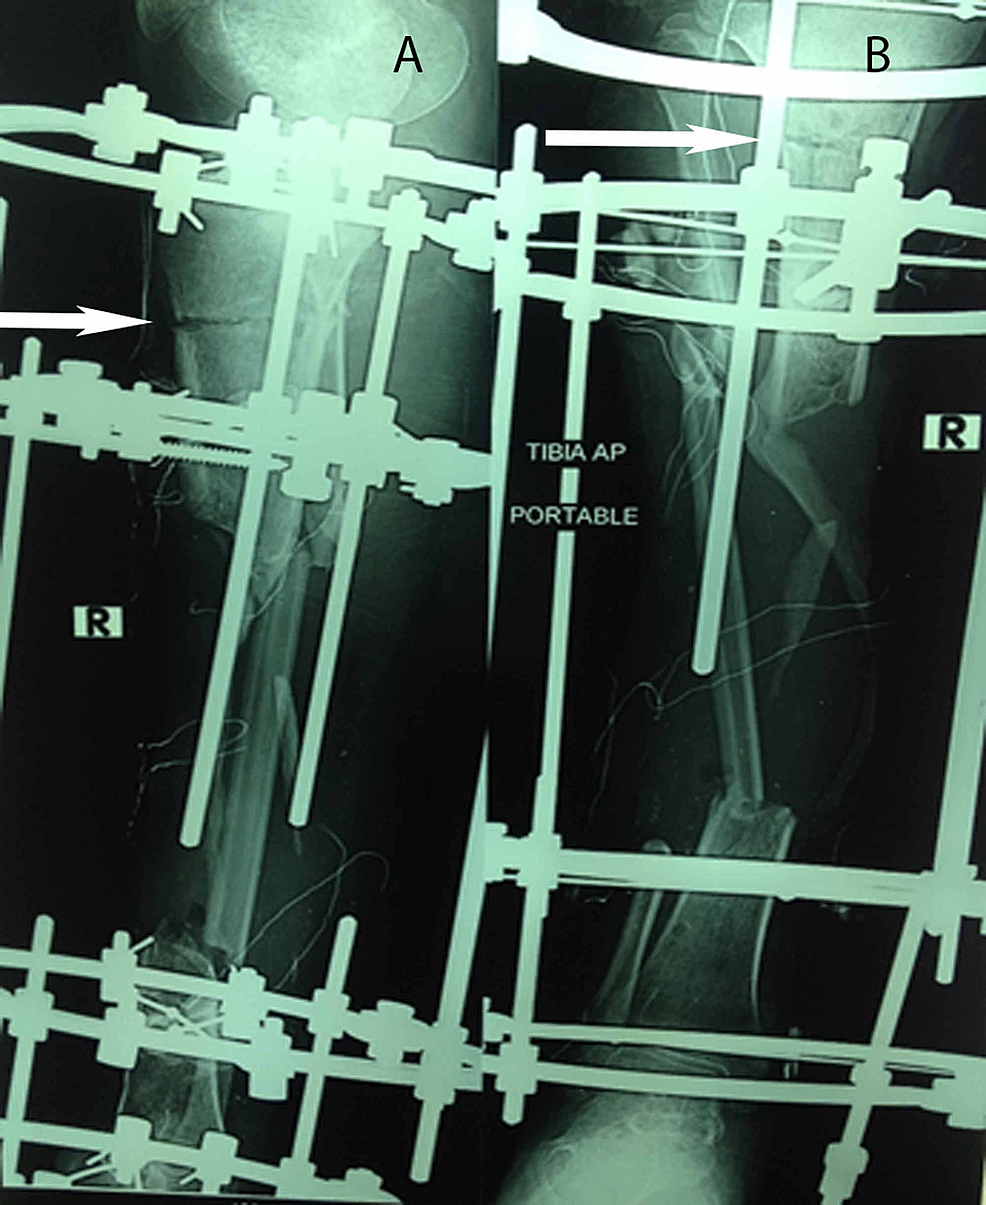 Immediate-postoperative-plain-radiographs-of-the-same-patient-who-underwent-multiple-drill-hole-osteotomy,-with-an-anteroposterior-(AP)-view-(2A)-and-a-posteroanterior-view-(2B)